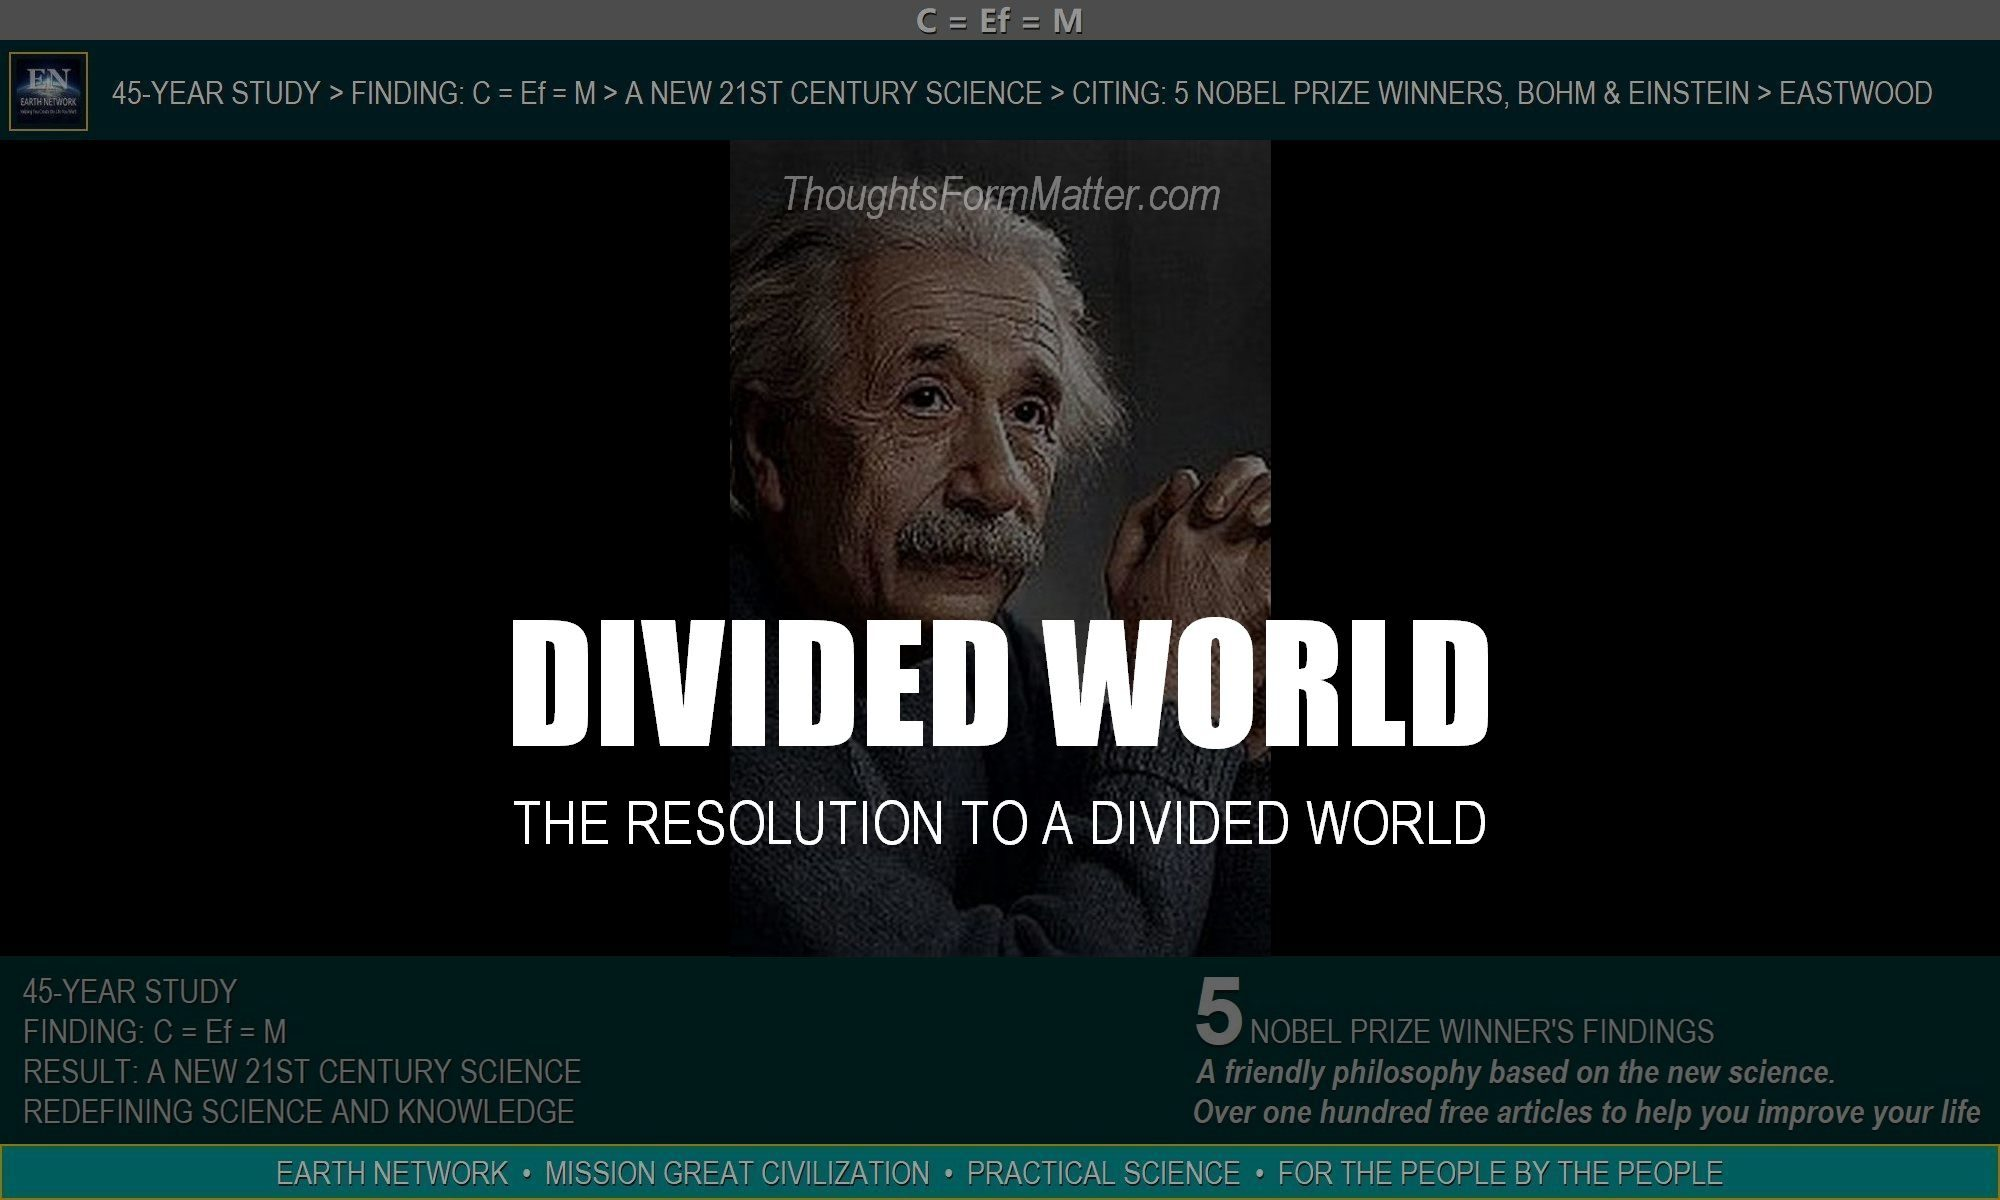 Einstein and Eastwood offer solution to a divided world. Why Americans, politicians and the people of the world are in disagreement and the resolution to arguments.